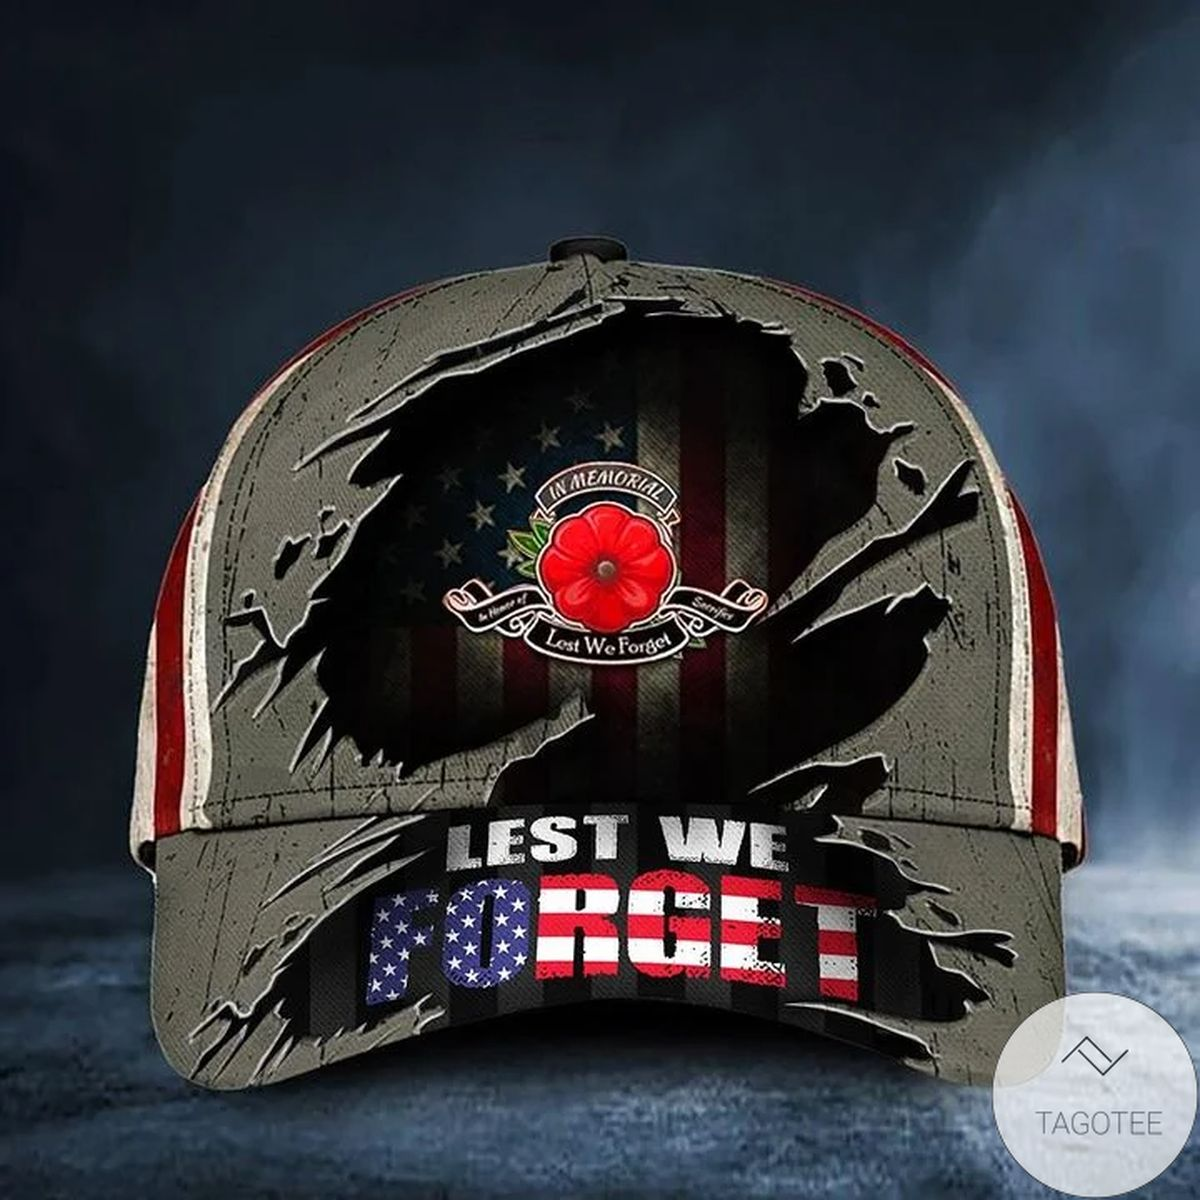 Lest We Forget Poppy American Flag Hat Patriotic Honoring Remembrance Veteran Day Gift